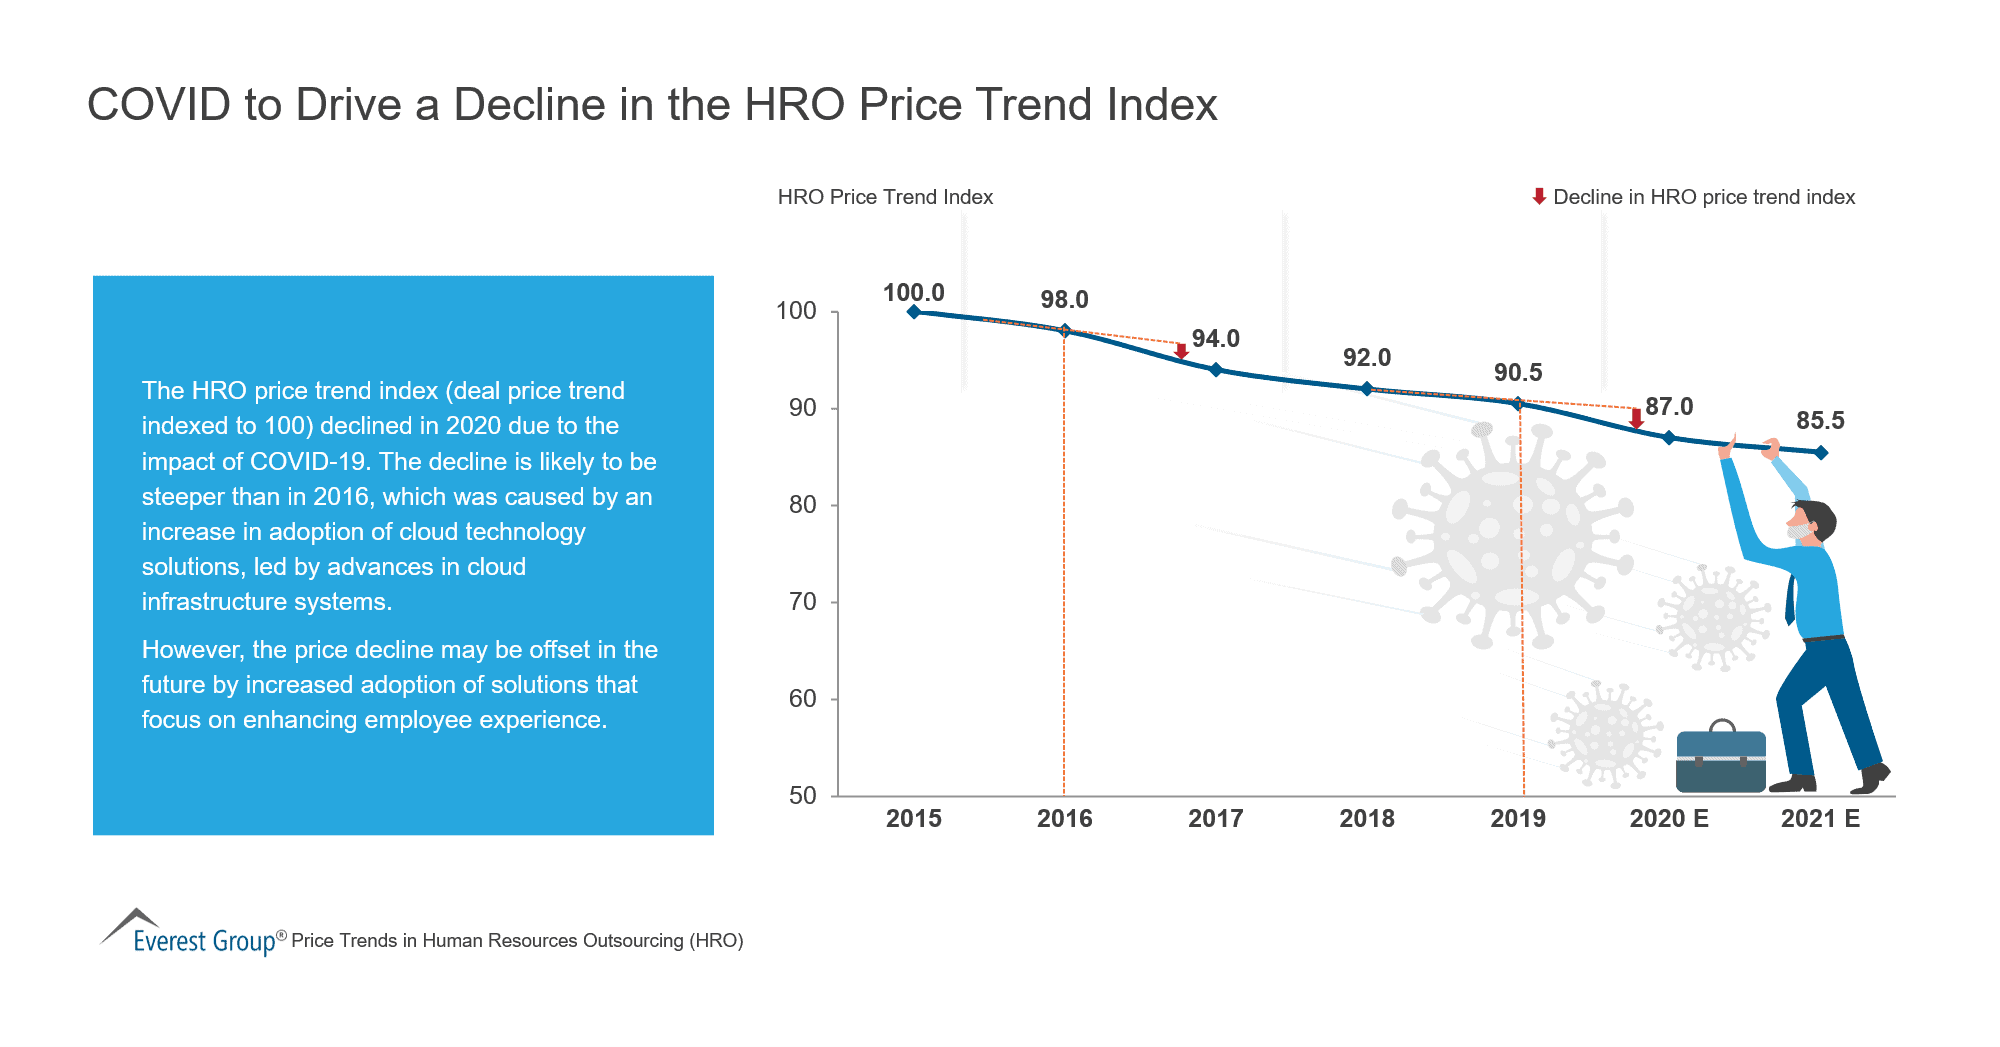 COVID to Drive a Decline in the HRO Price Trend Index